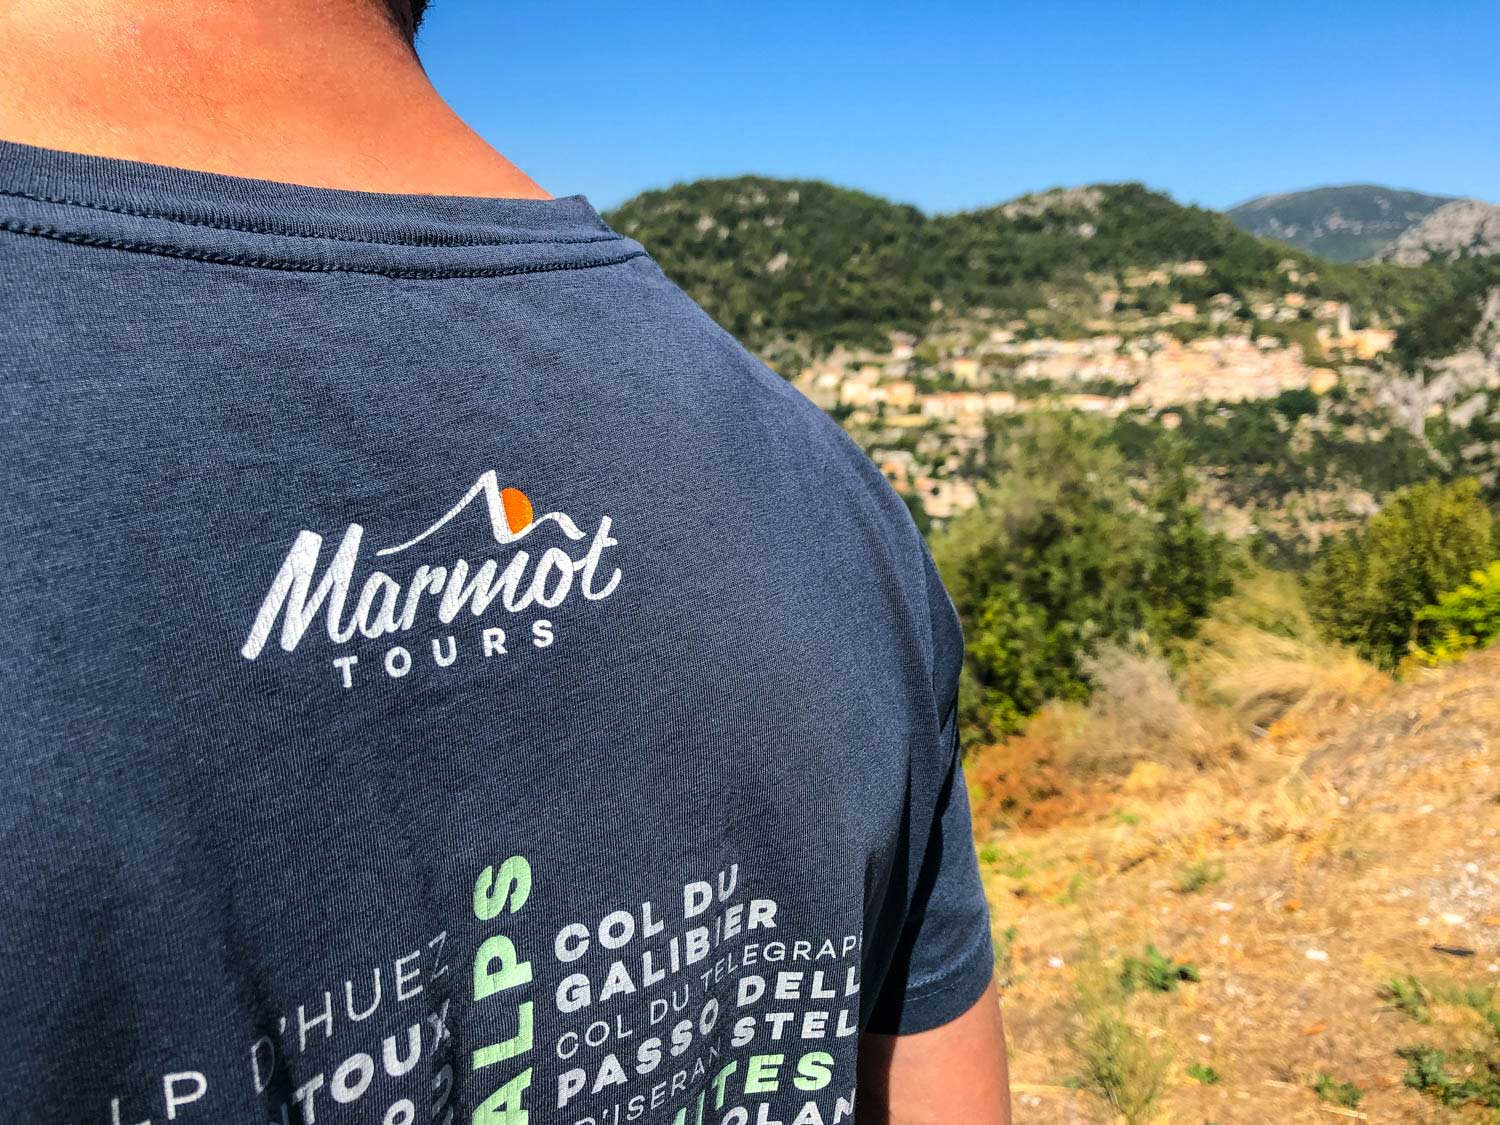 Marmot Tours European cycling holidays guide showing reverse of team t shirt